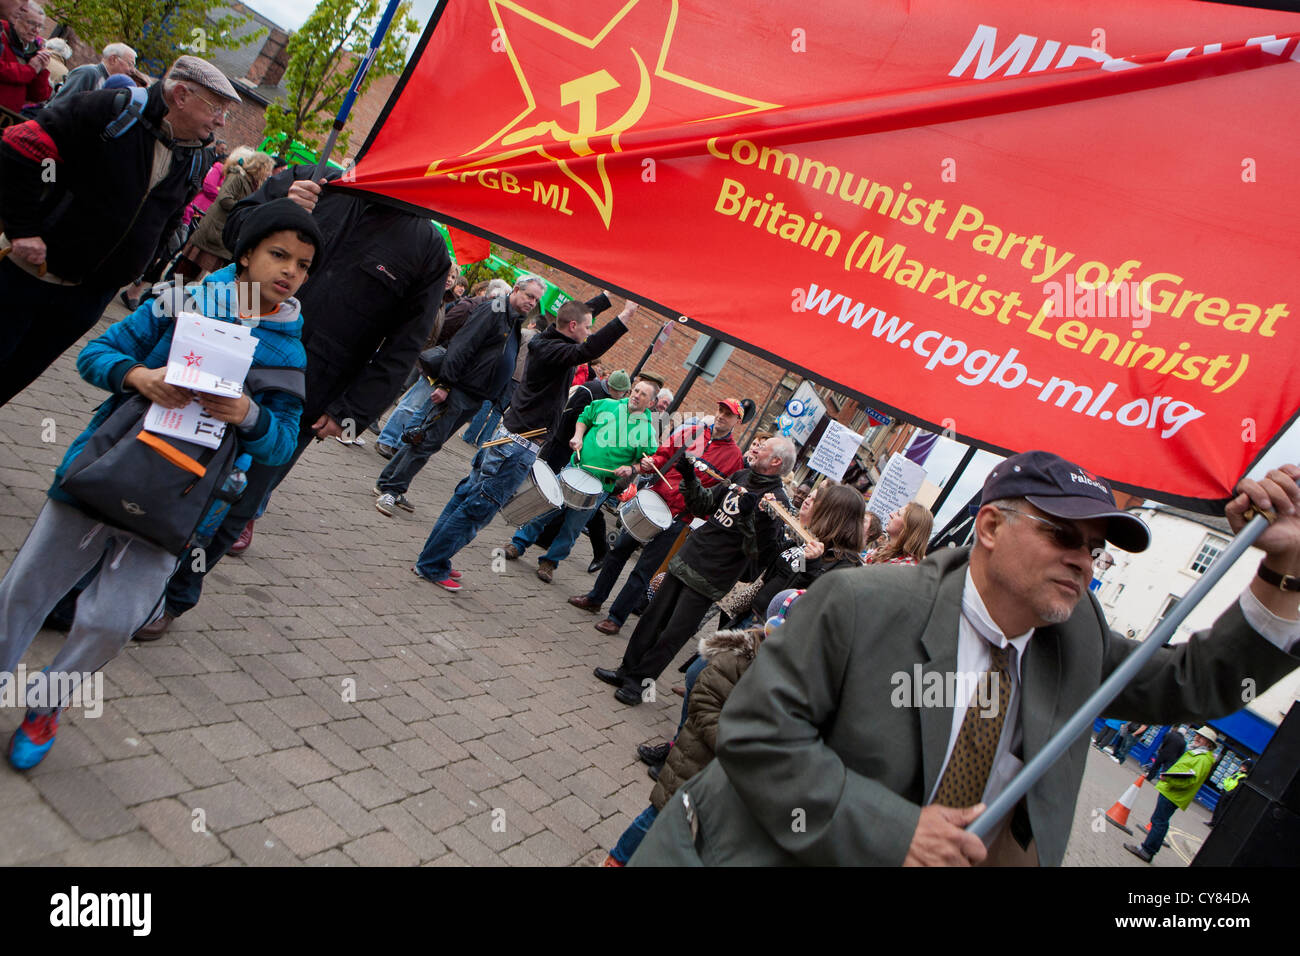 Chesterfield May Day, International Workers Day celebrations, Chesterfield, Derbyshire, England, UK - Stock Image